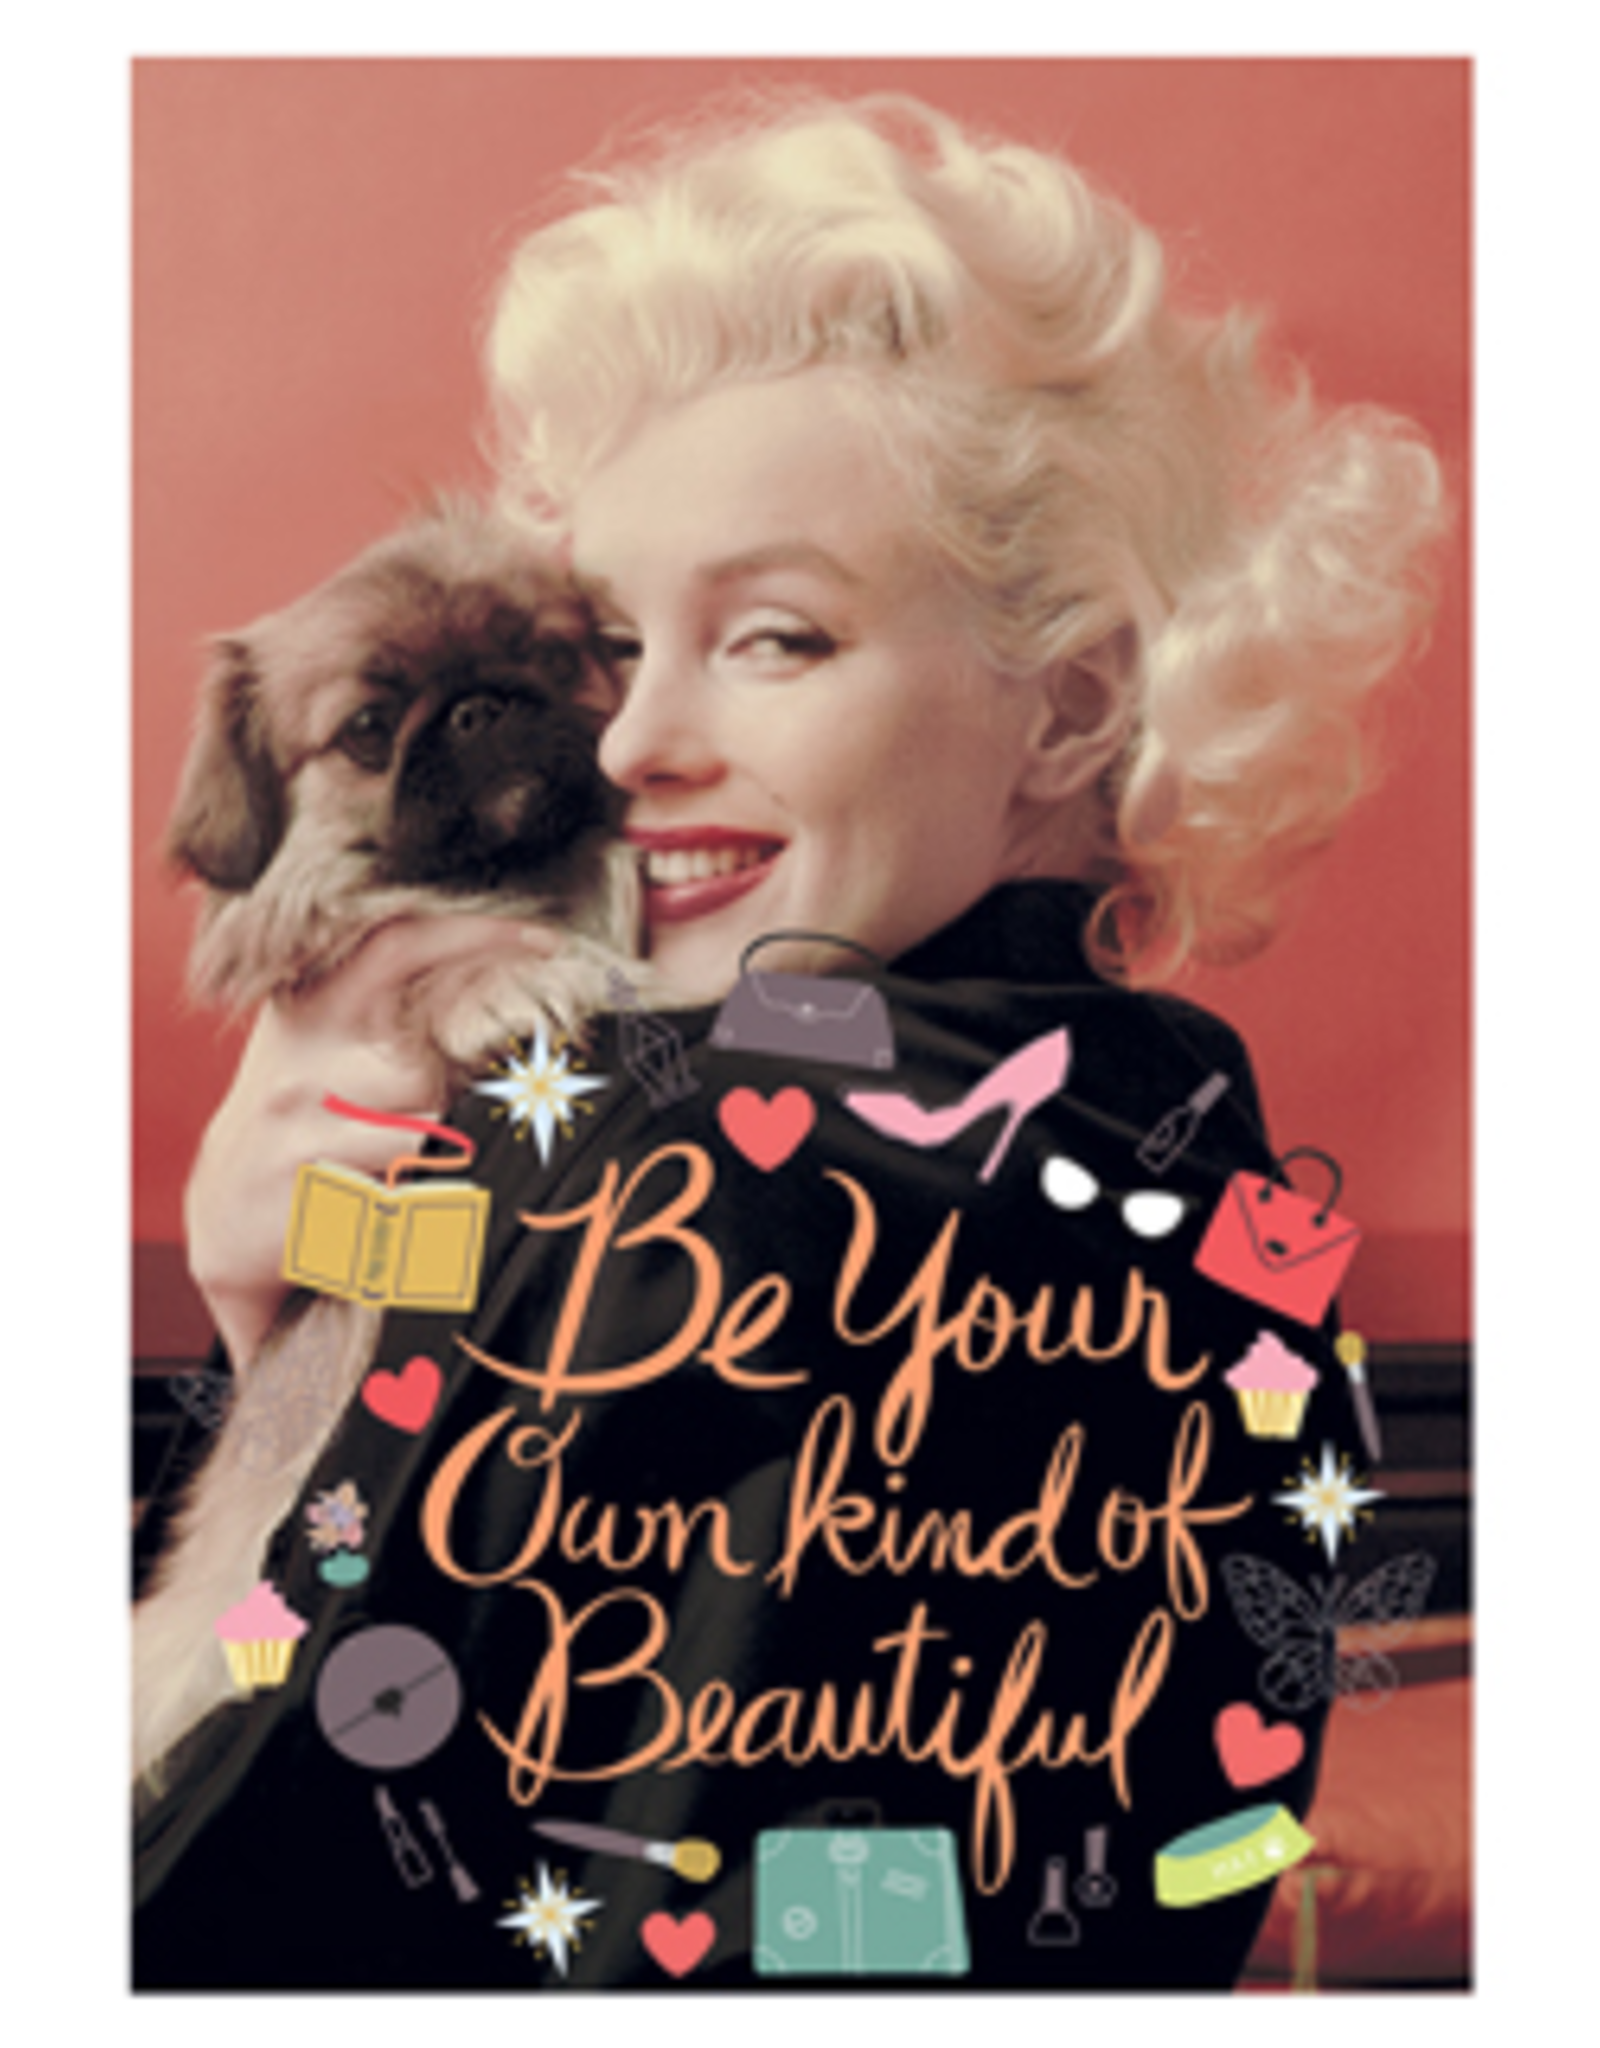 Marilyn Monroe kaart - Be your own kind of beautiful